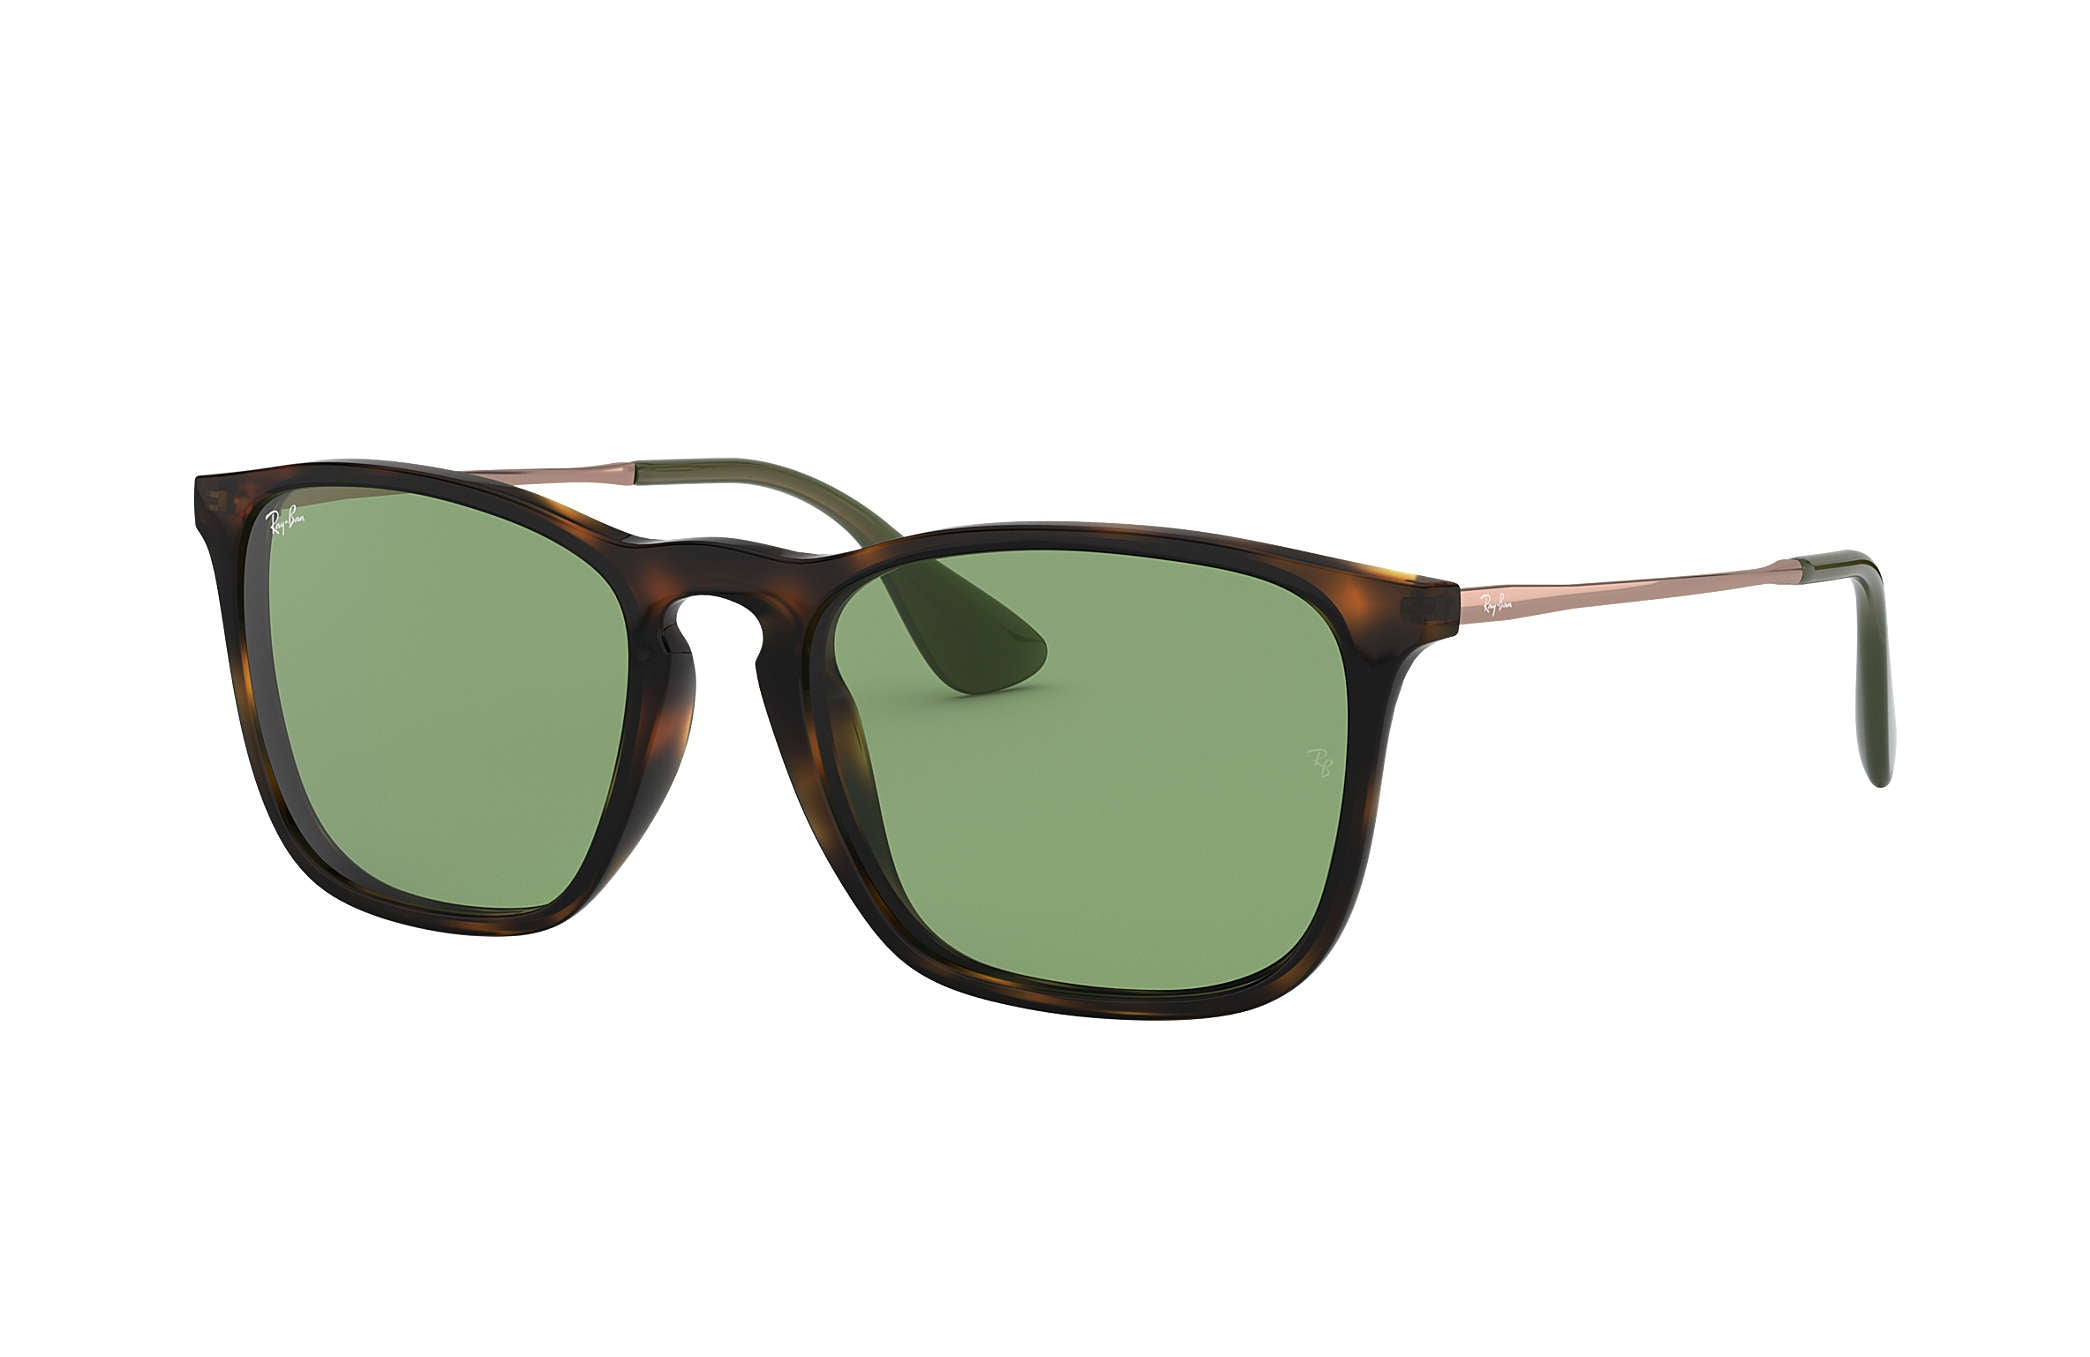 RAY-BAN SUNGLASSES Default CHRIS SUNGLASSES HAVANA TORTOISE / BRONZE - COPPER GREEN